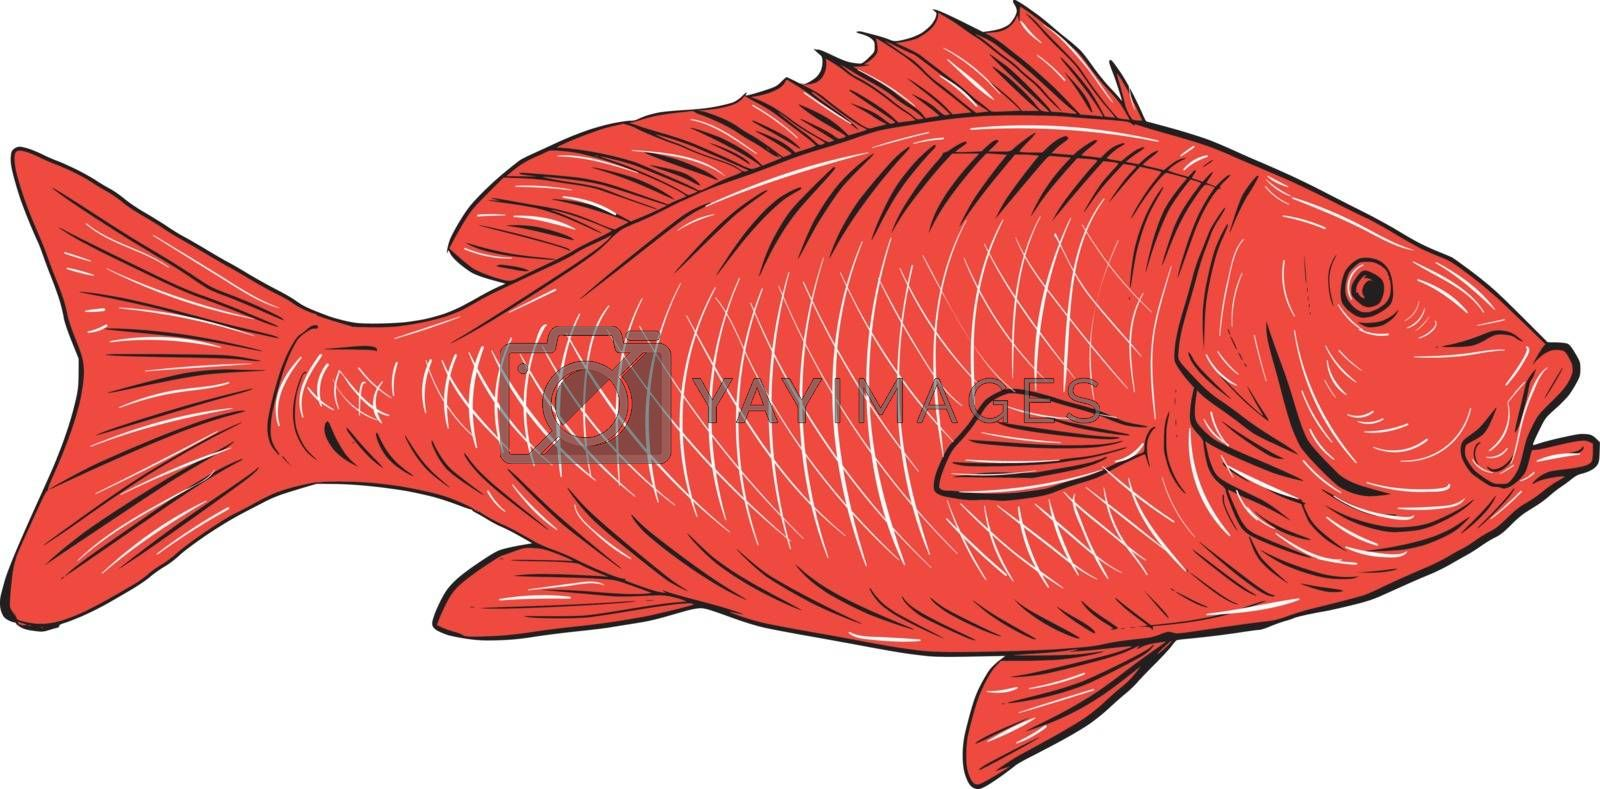 Drawing sketch style illustration of an Australasian snapper, silver seabream, Pagrus auratus, a species of porgie found in coastal waters of Australia, Philippines, Indonesia, China, Taiwan, Japan and New Zealand swimming viewed from the side set on isolated white background.